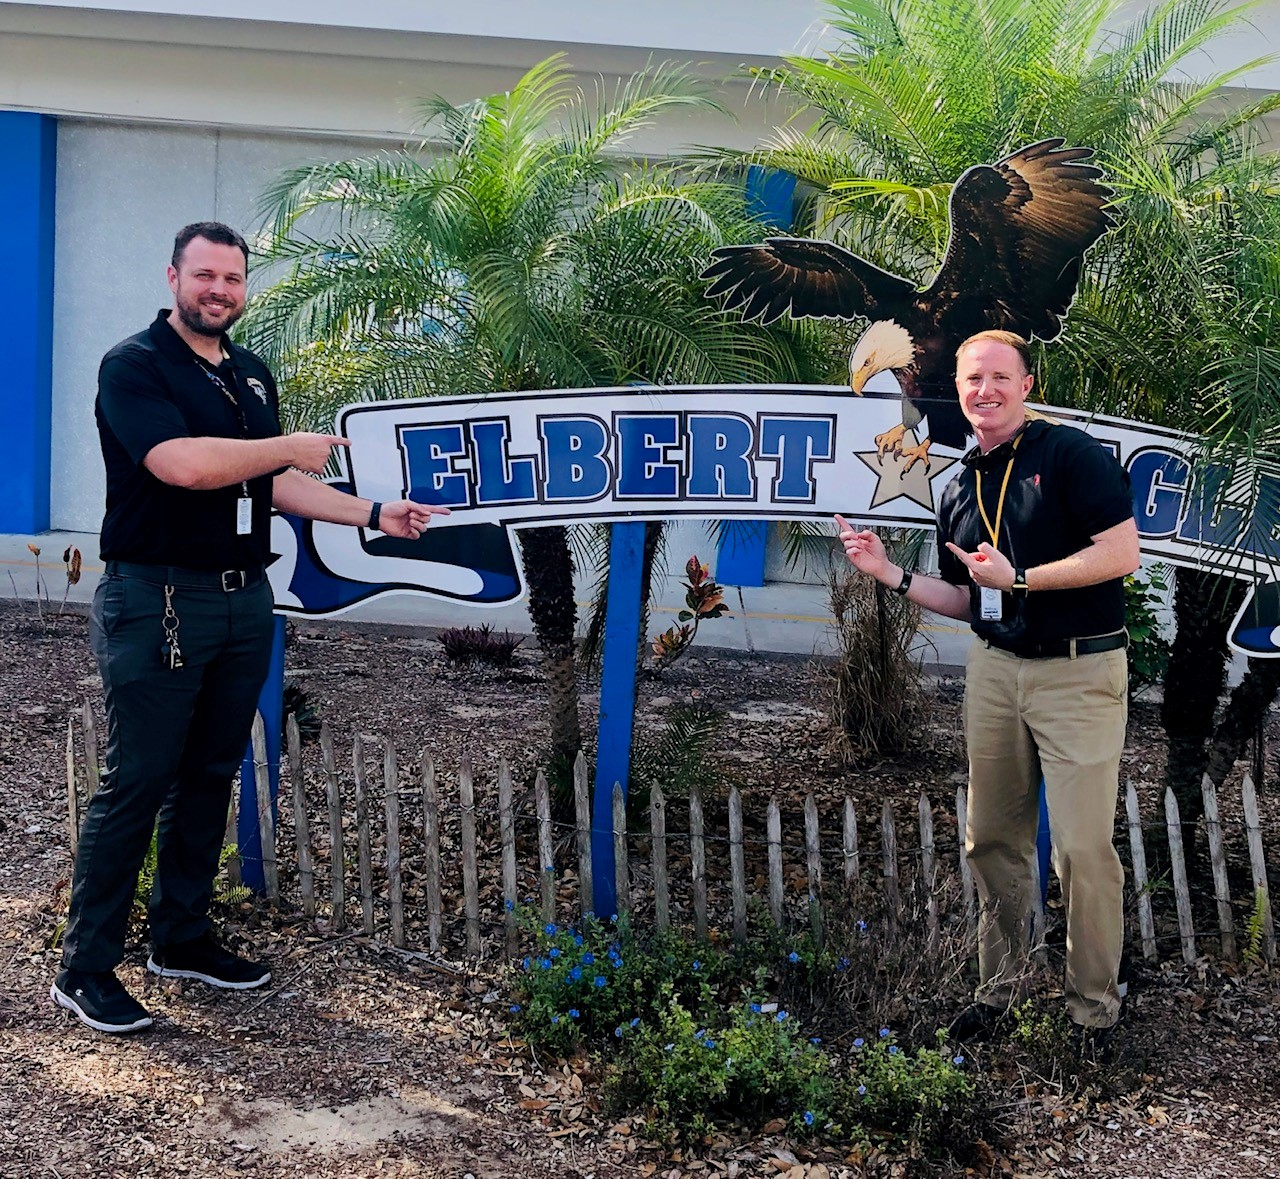 Hall and Clark at Elbert Elementary